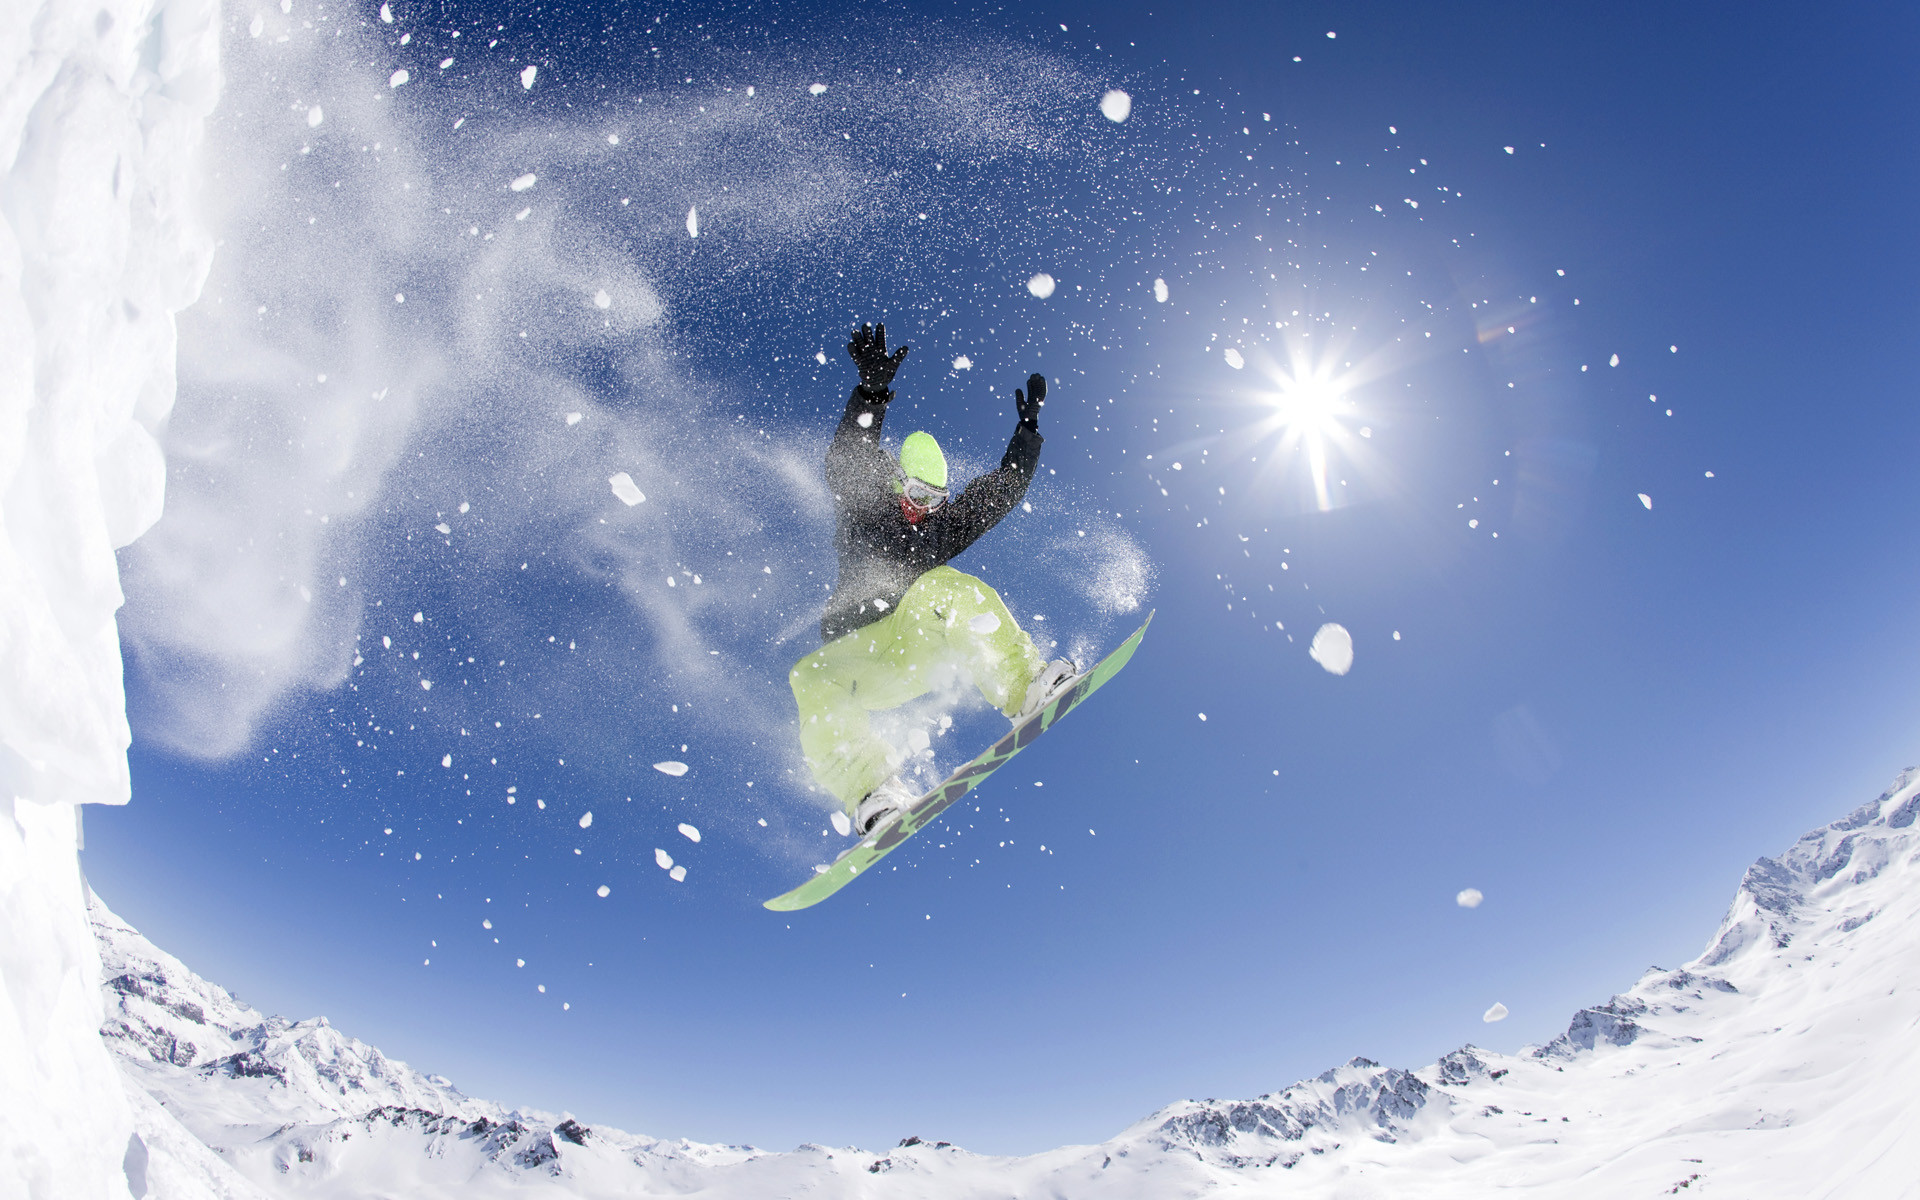 how to get sponsored by redbull for snowboarding